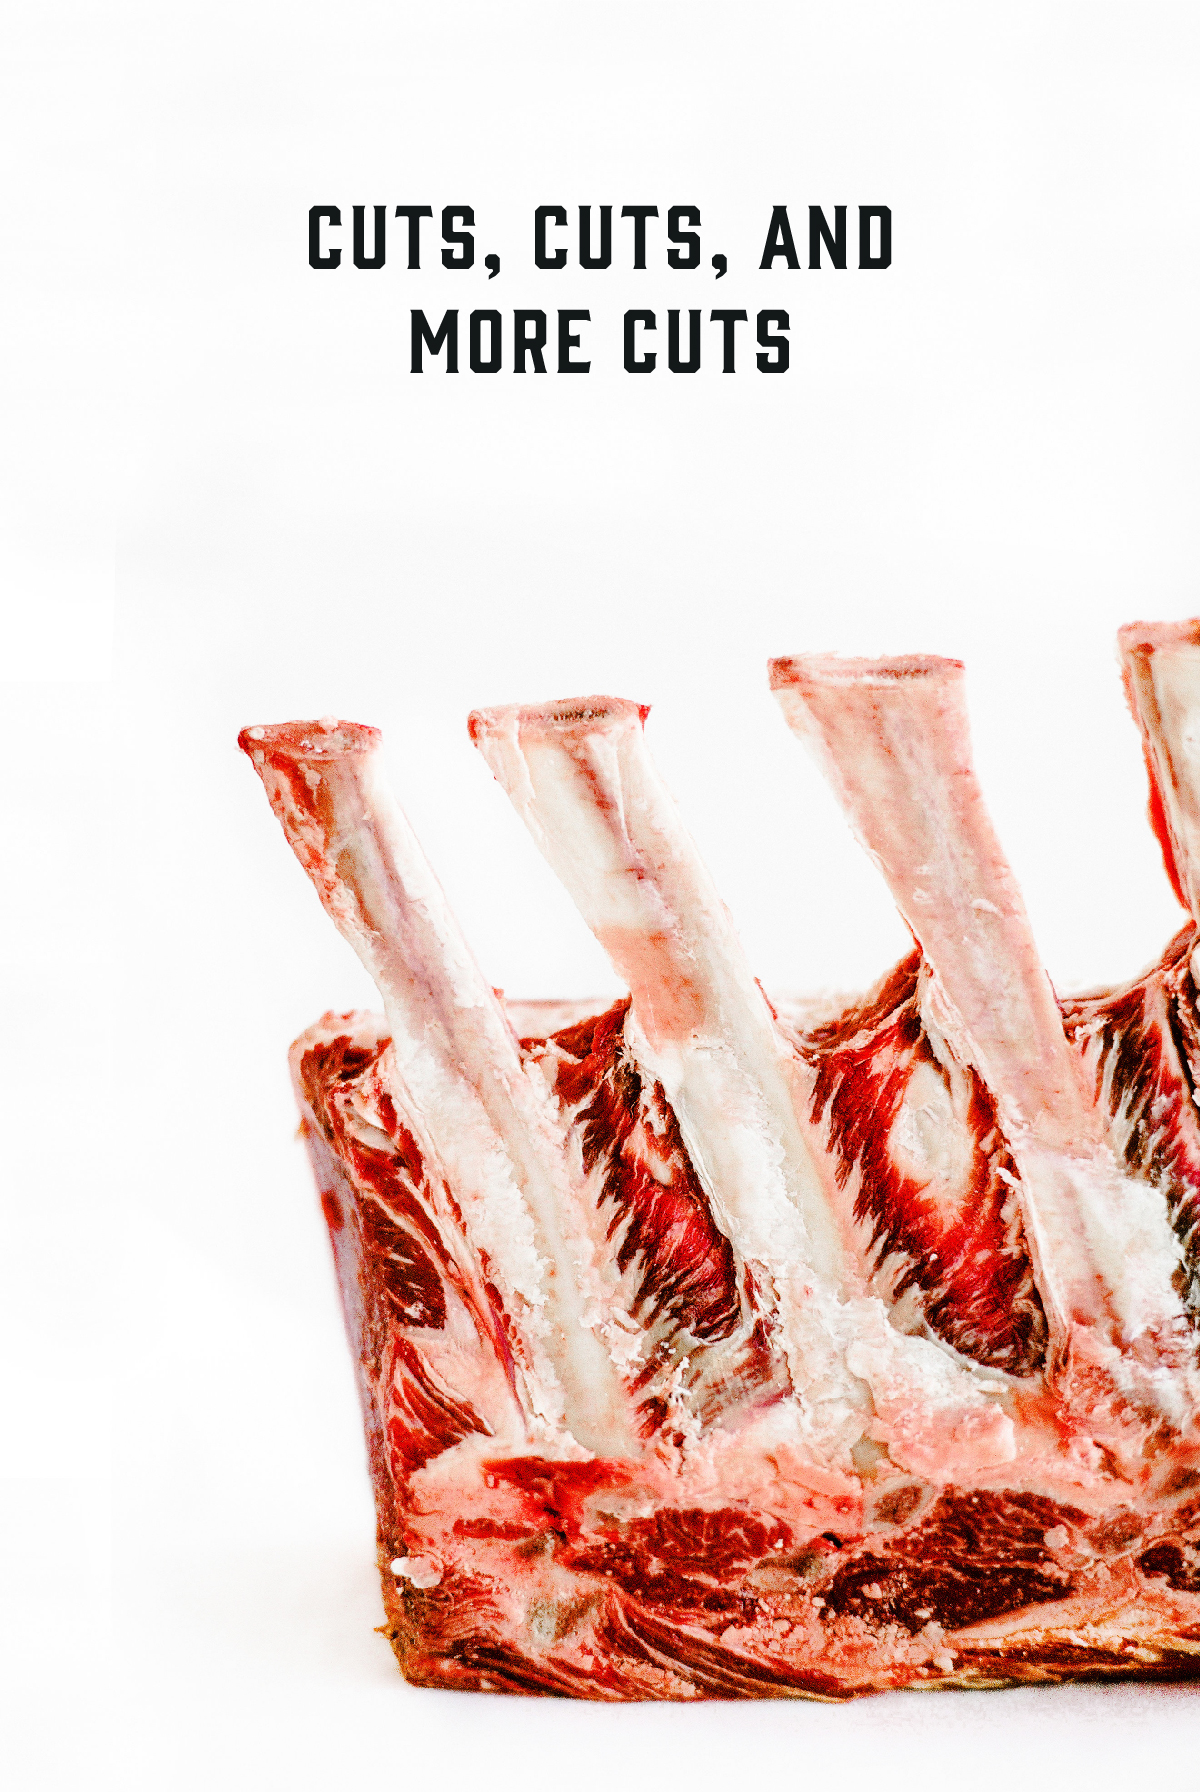 - We offer over 30 cuts of beef, 22 varieties of pork, 18 cuts of chicken, and 18 cuts of lamb.